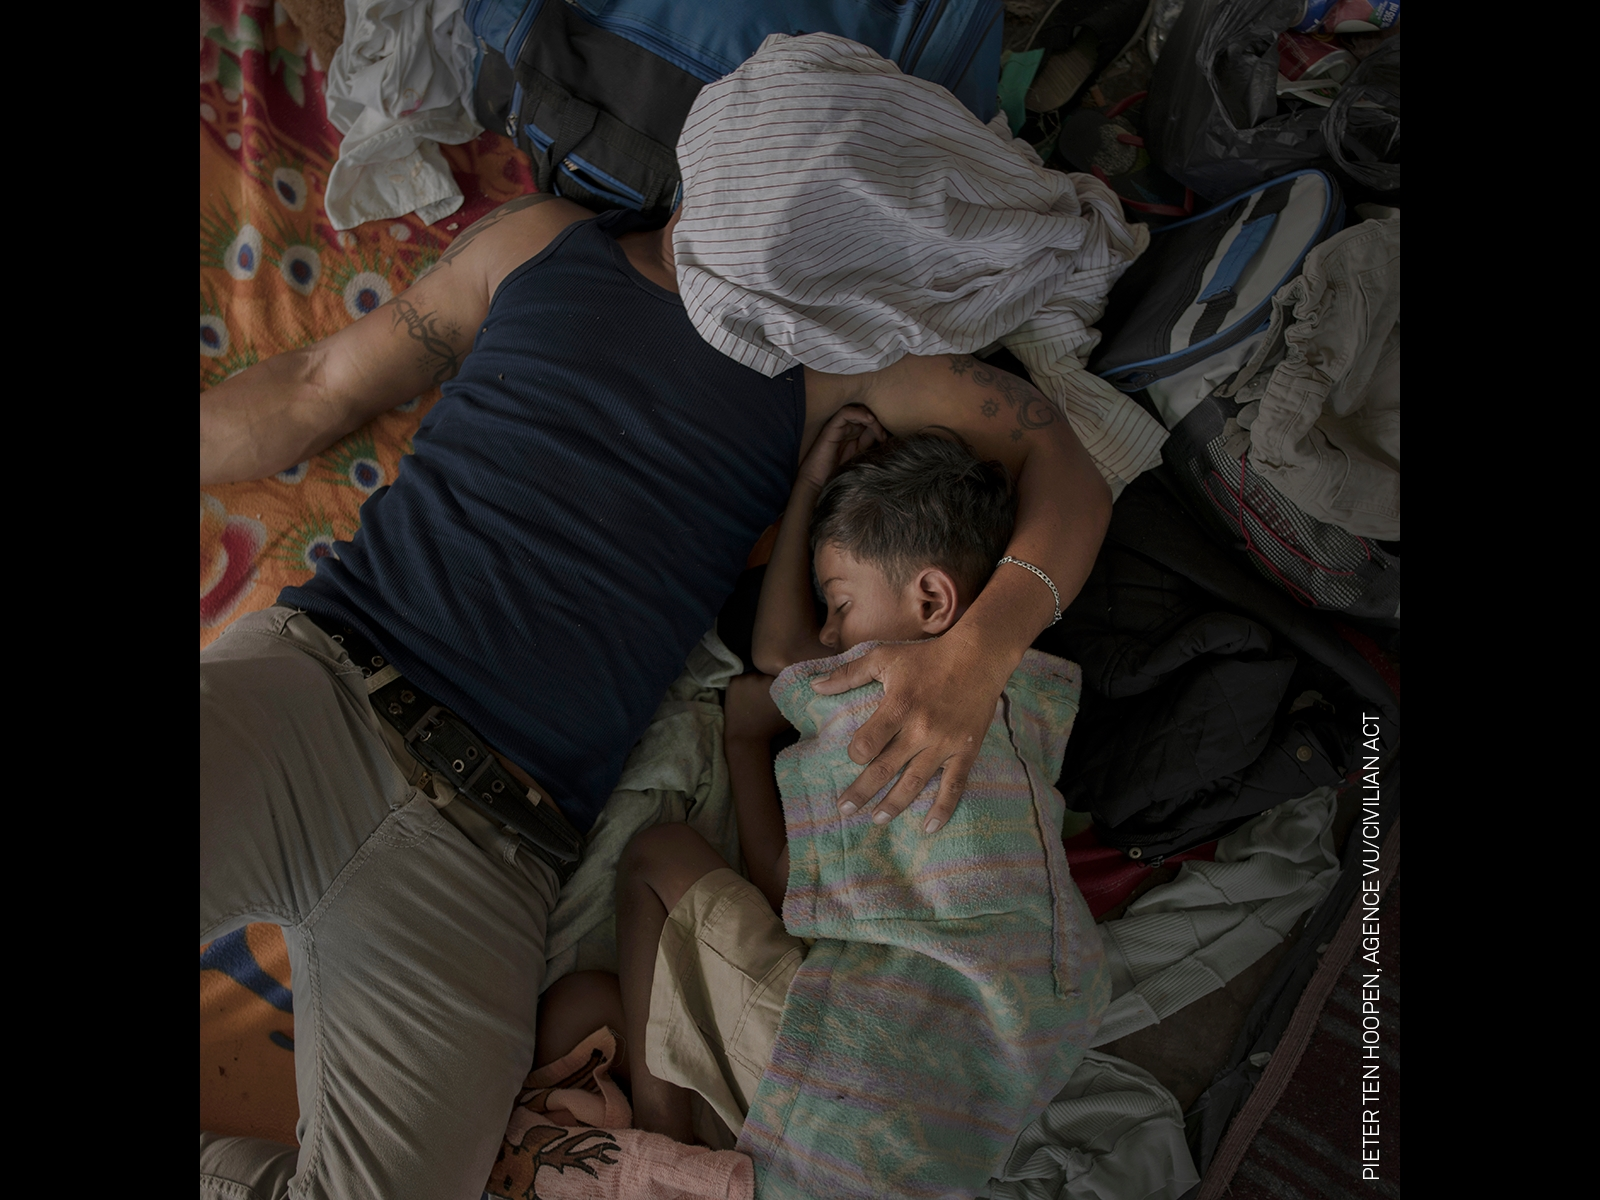 Agence Vu Civilian Act Online. World Press Photo Story of the Year and Spot News, Stories, 1st Prize